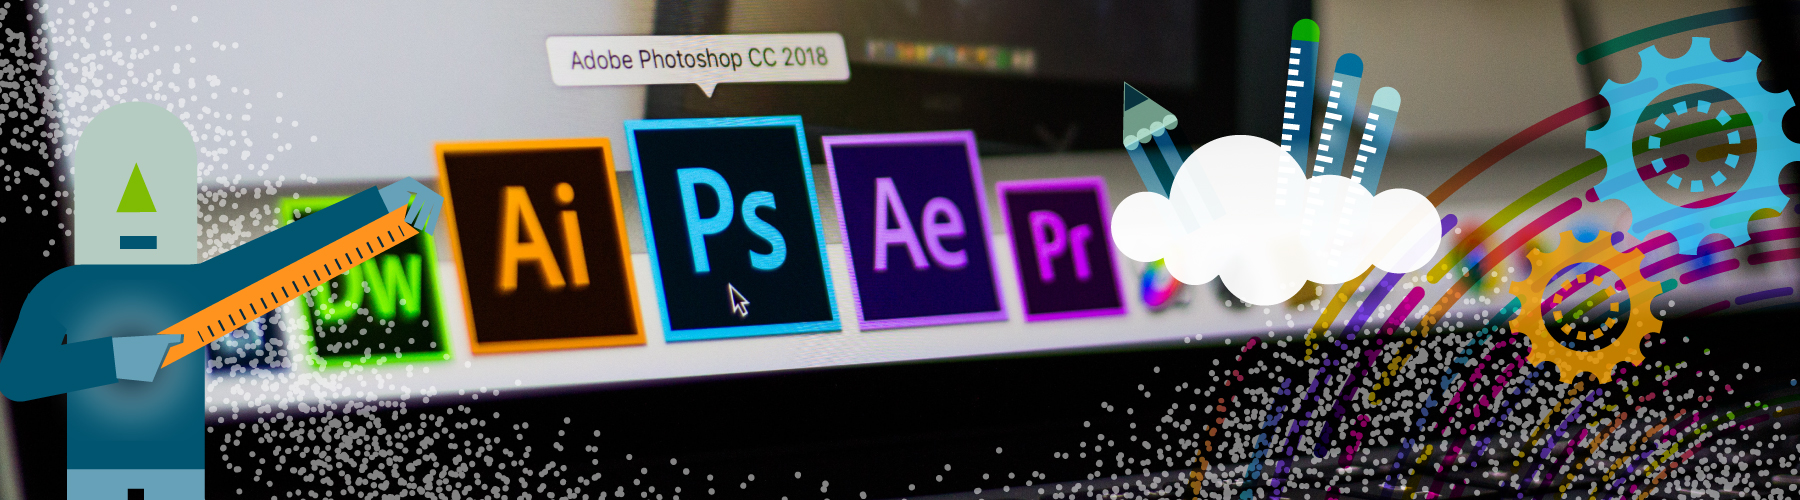 ¡Photoshop vs Illustrator! ¿Cuál es mejor?